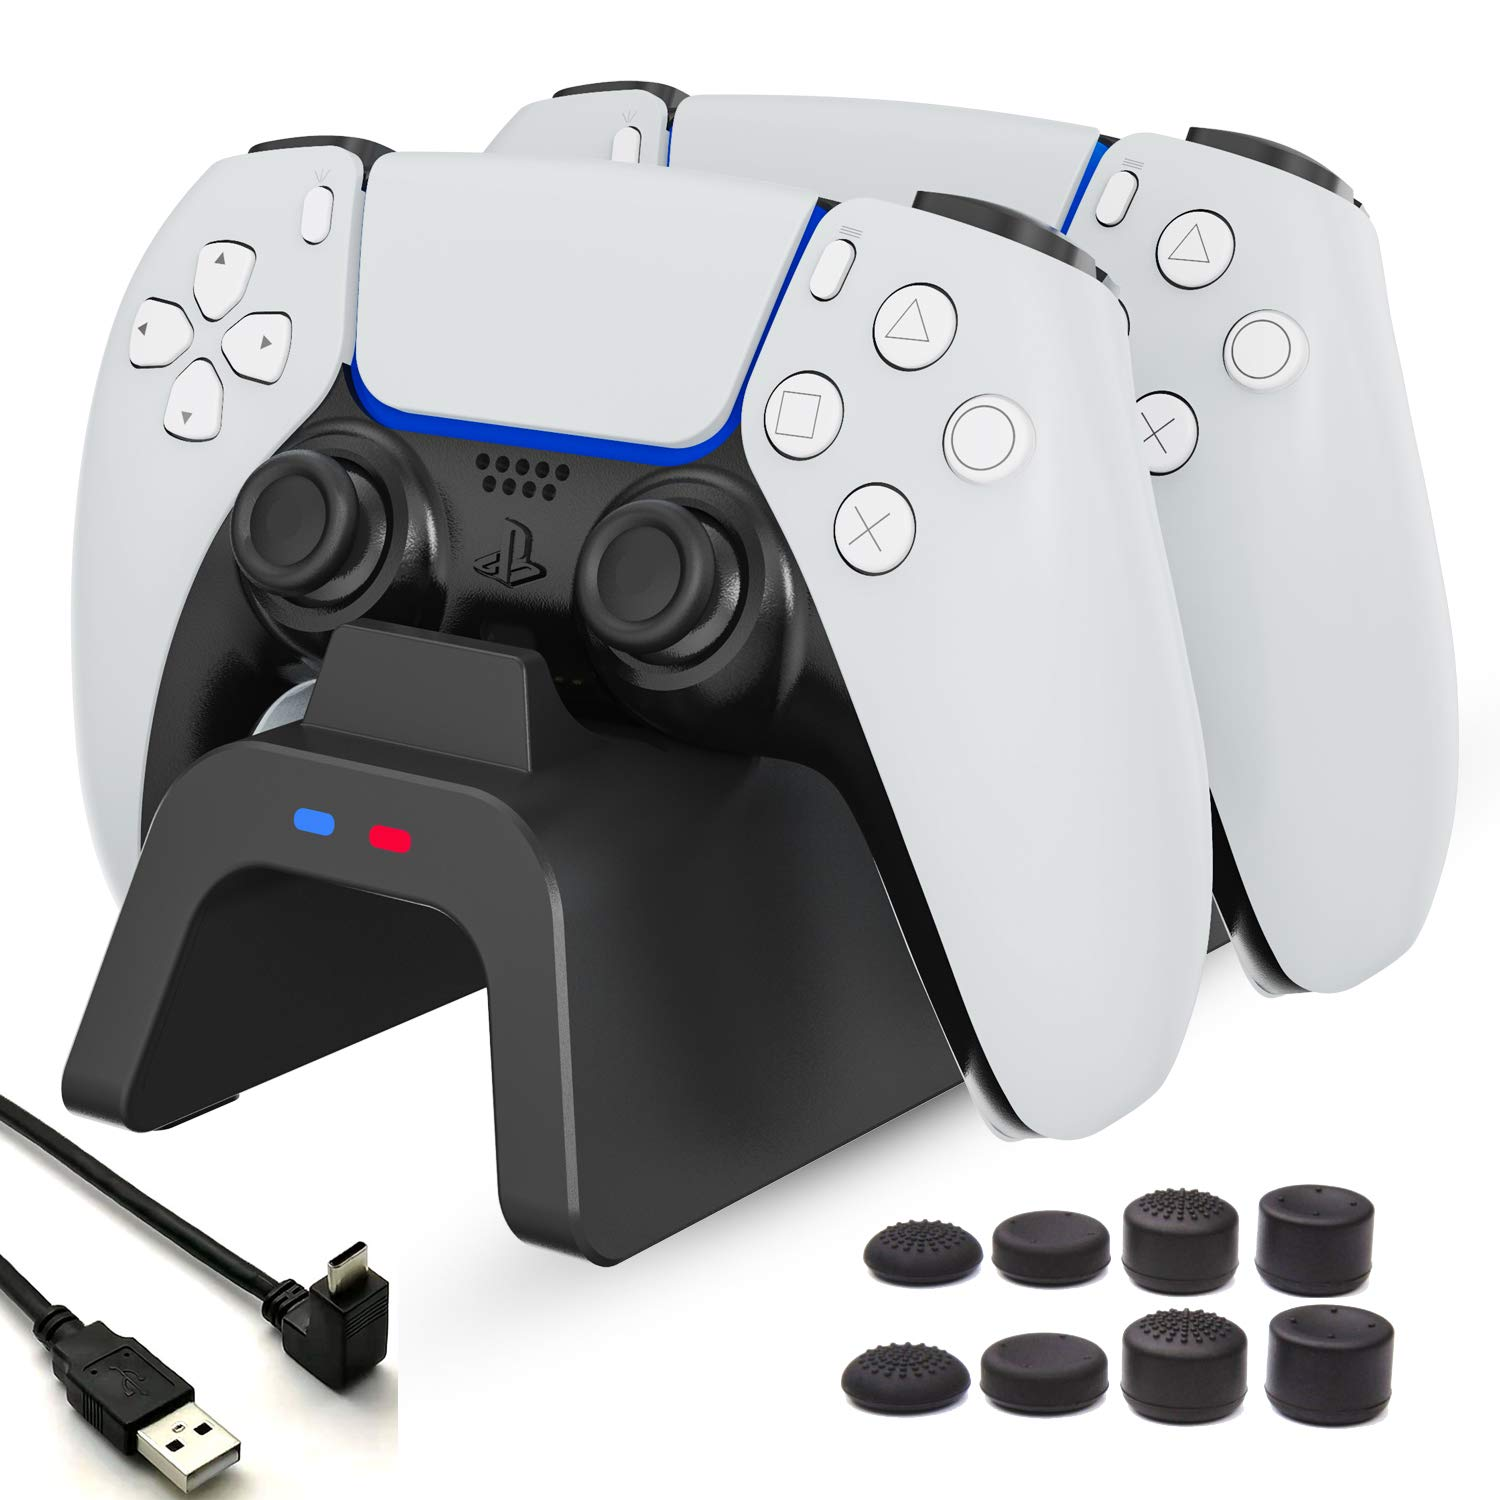 KAUPOONK PS5 Controller Charger Station, Upgraded ps5 Charging Station, Playstation 5 dualsense Charging Station with LED Indicator and Accessories Trigger Kit